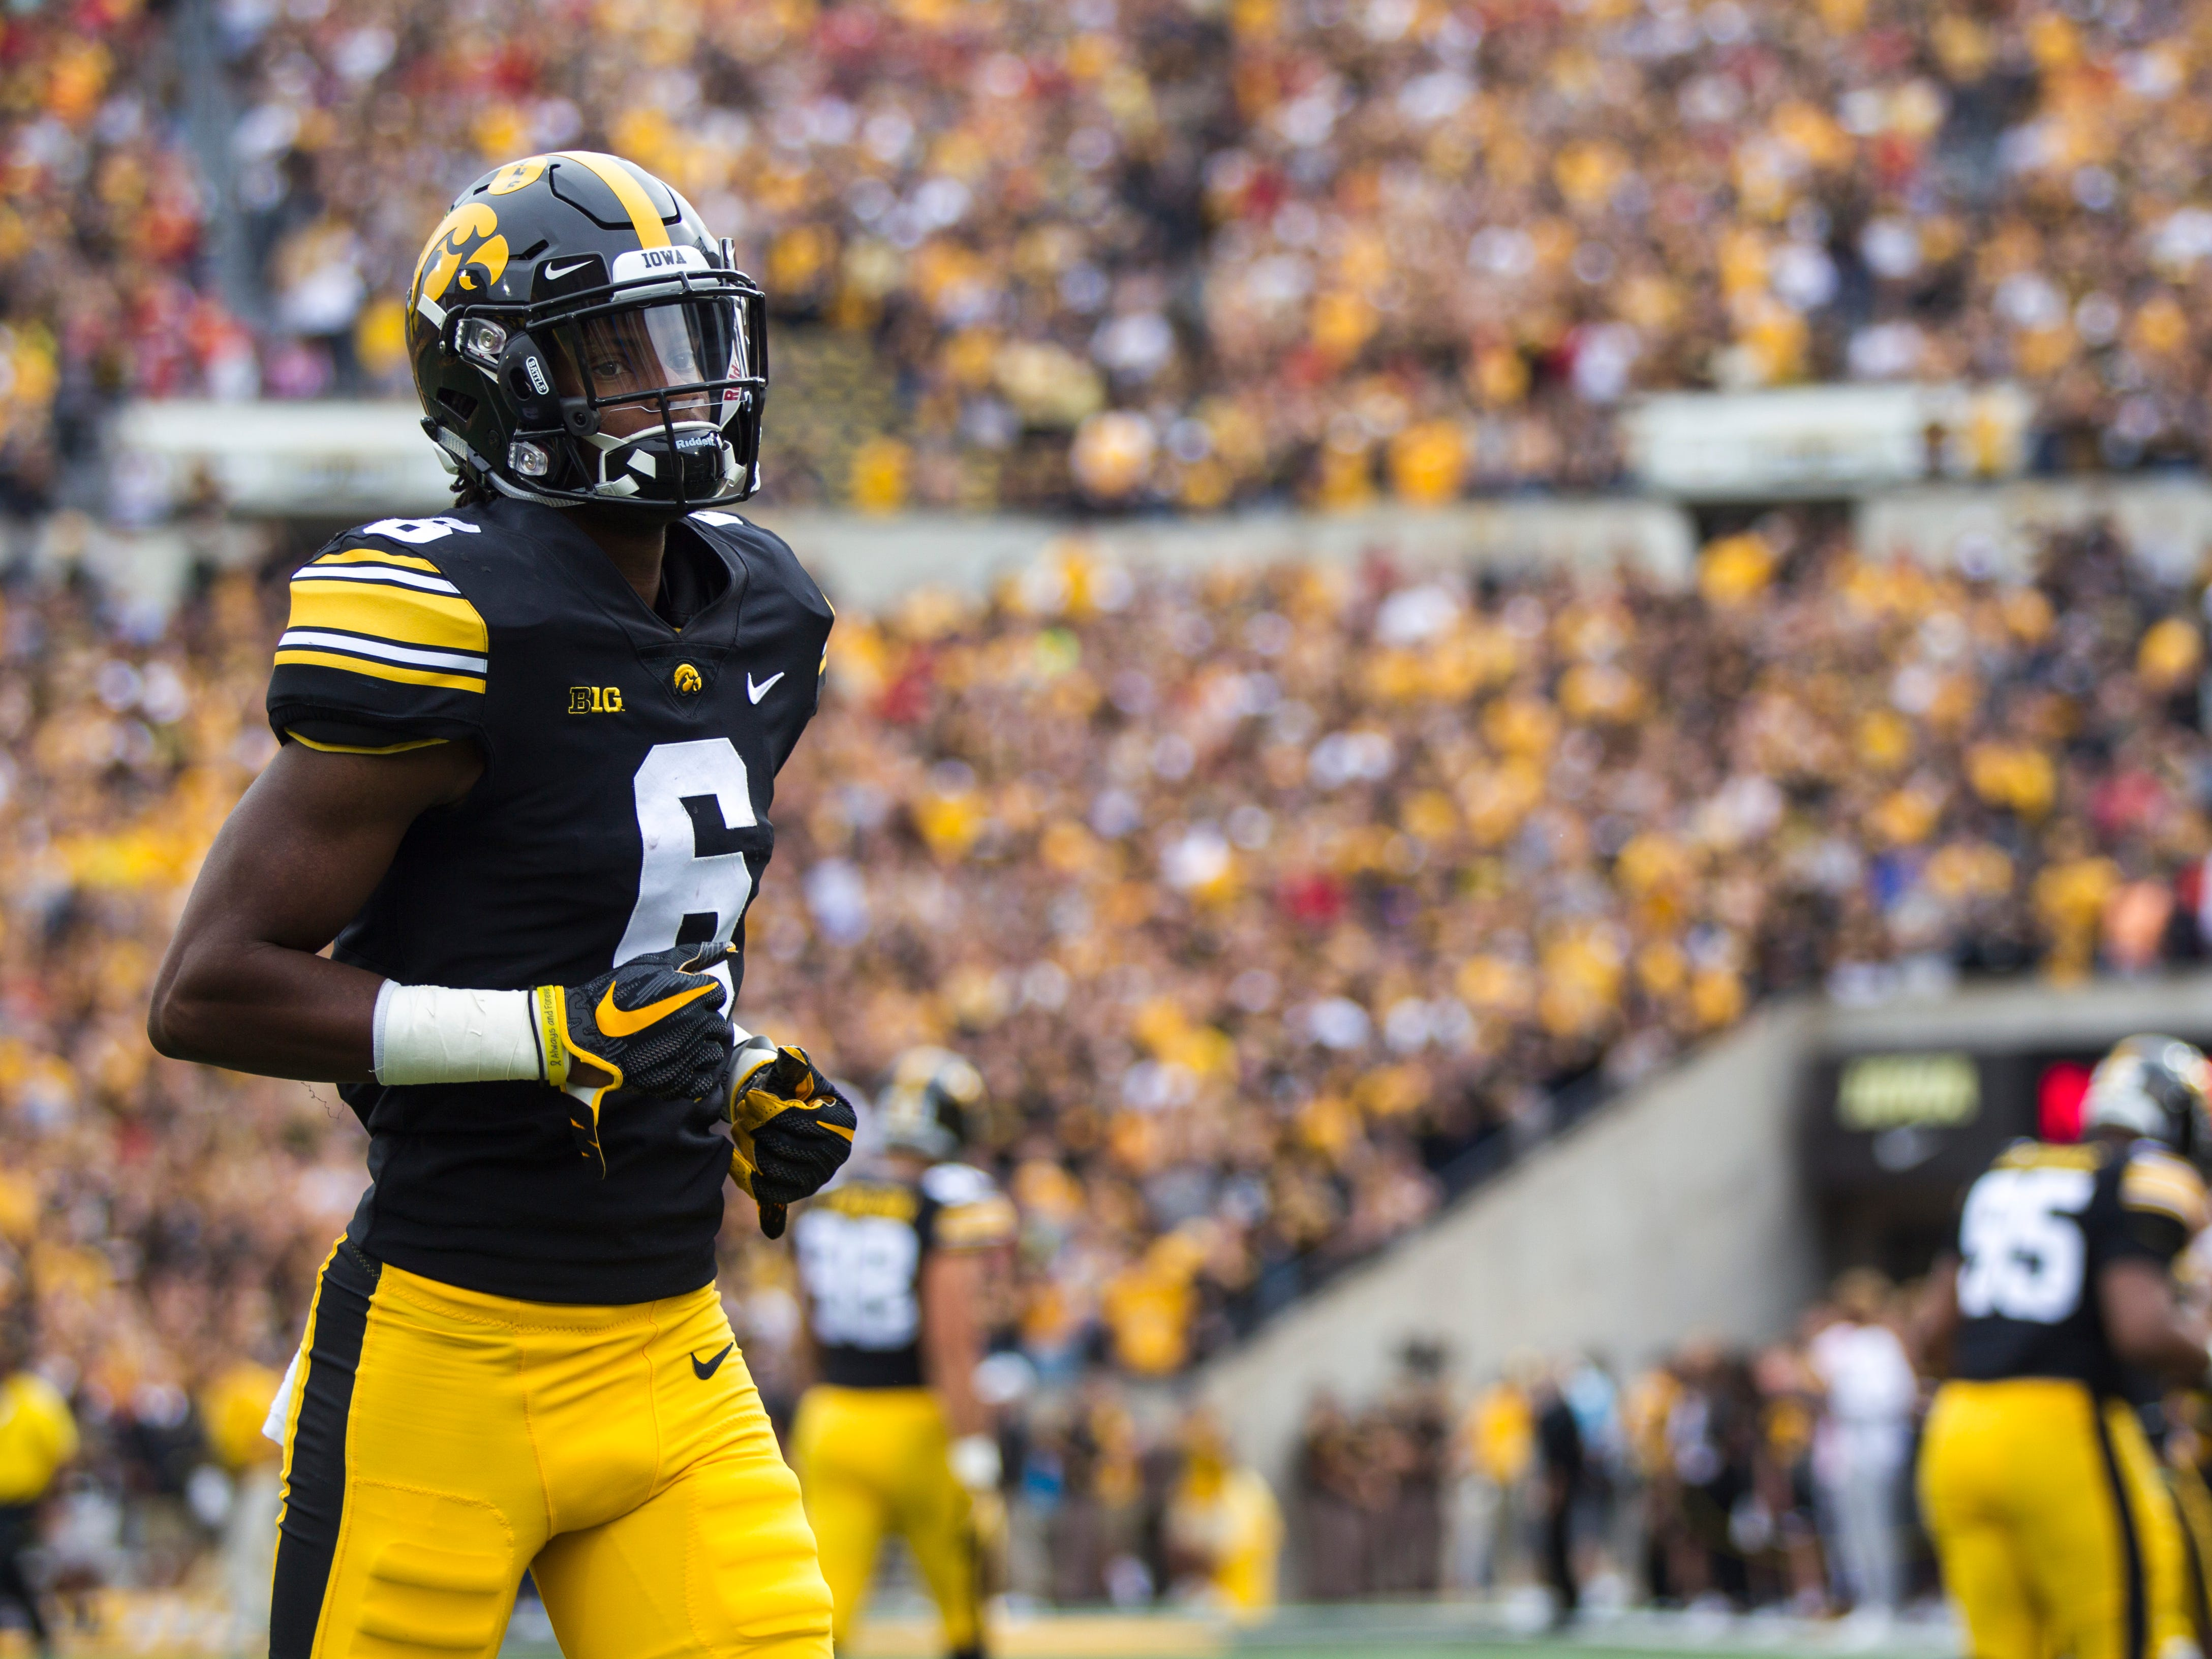 Iowa wide receiver Ihmir Smith-Marsette (6) runs on the field before the Cy-Hawk NCAA football game on Saturday, Sept. 8, 2018, at Kinnick Stadium in Iowa City.